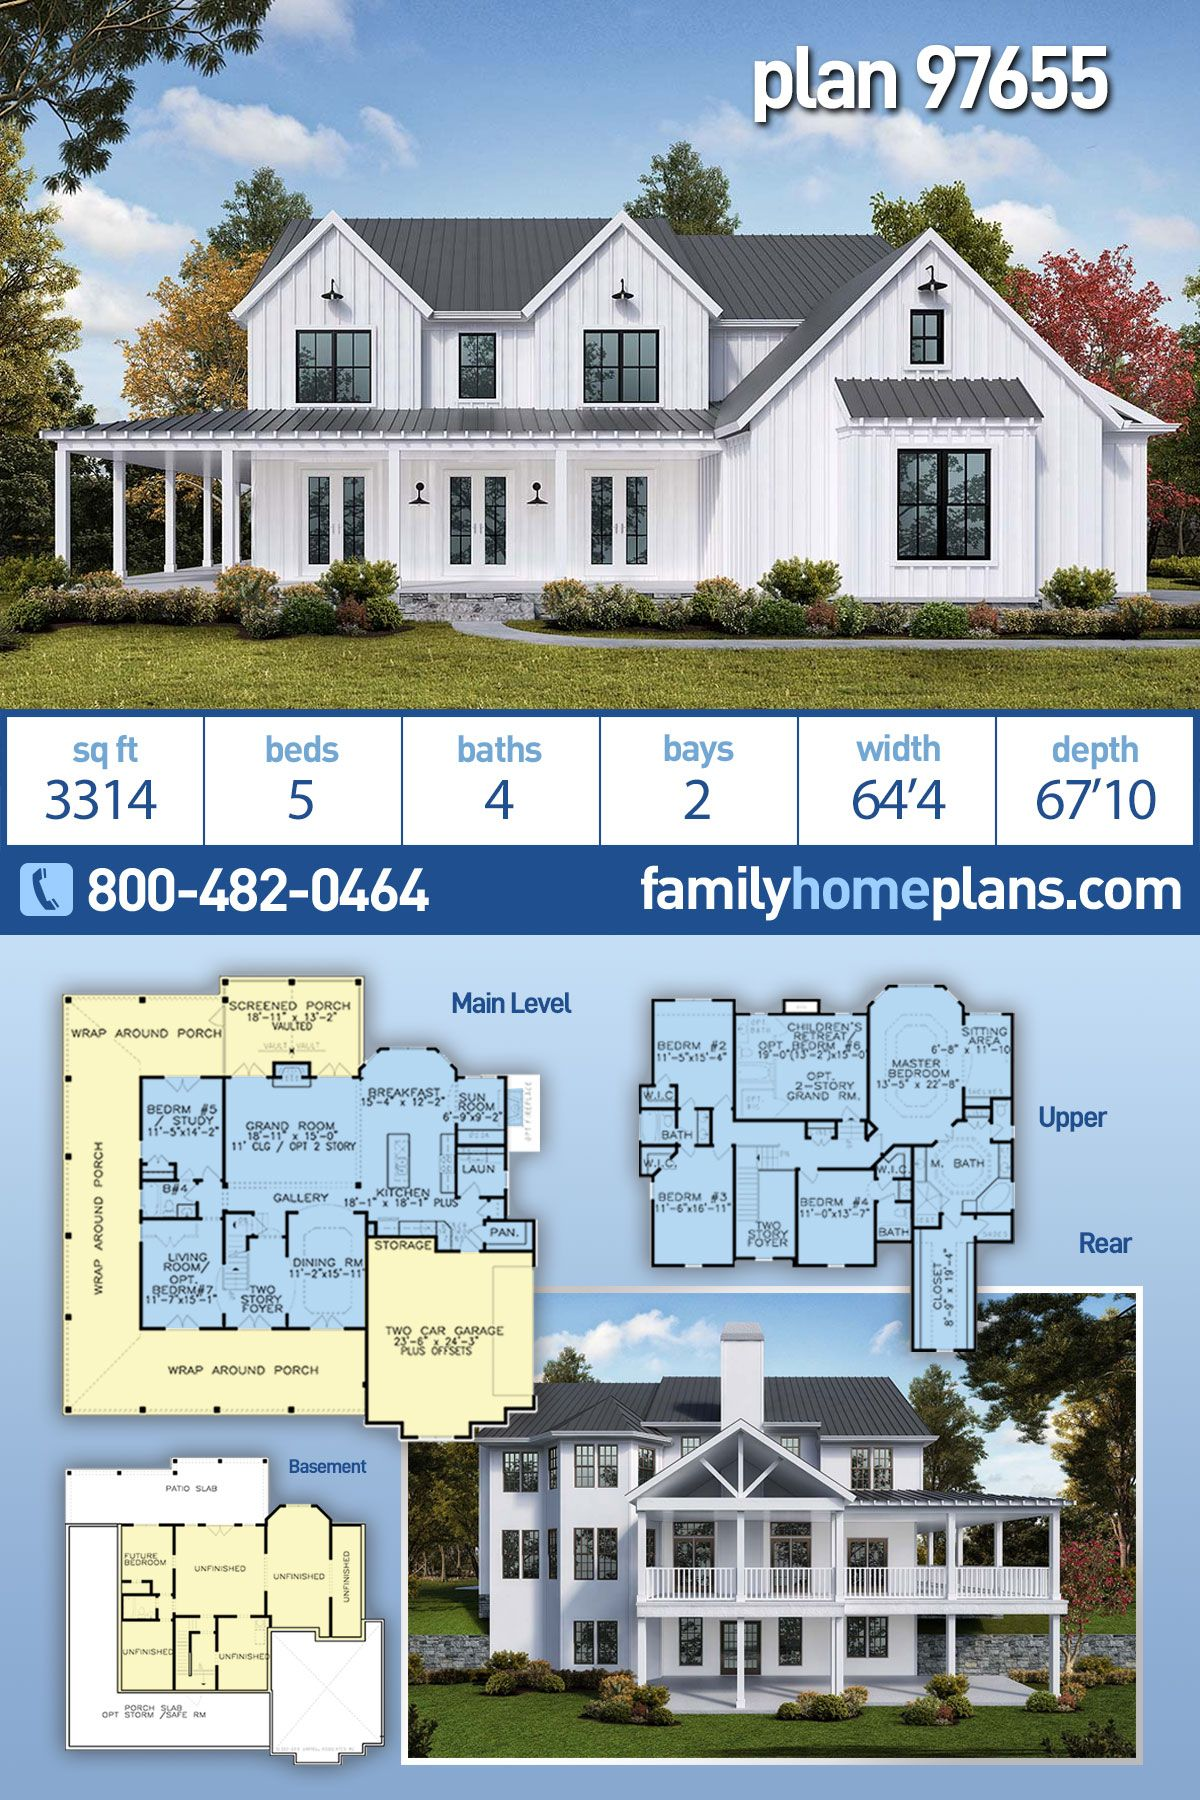 Southern Style House Plan 97655 With 5 Bed 4 Bath 2 Car Garage In 2020 Ranch Style House Plans Farmhouse Plans Ranch House Plans